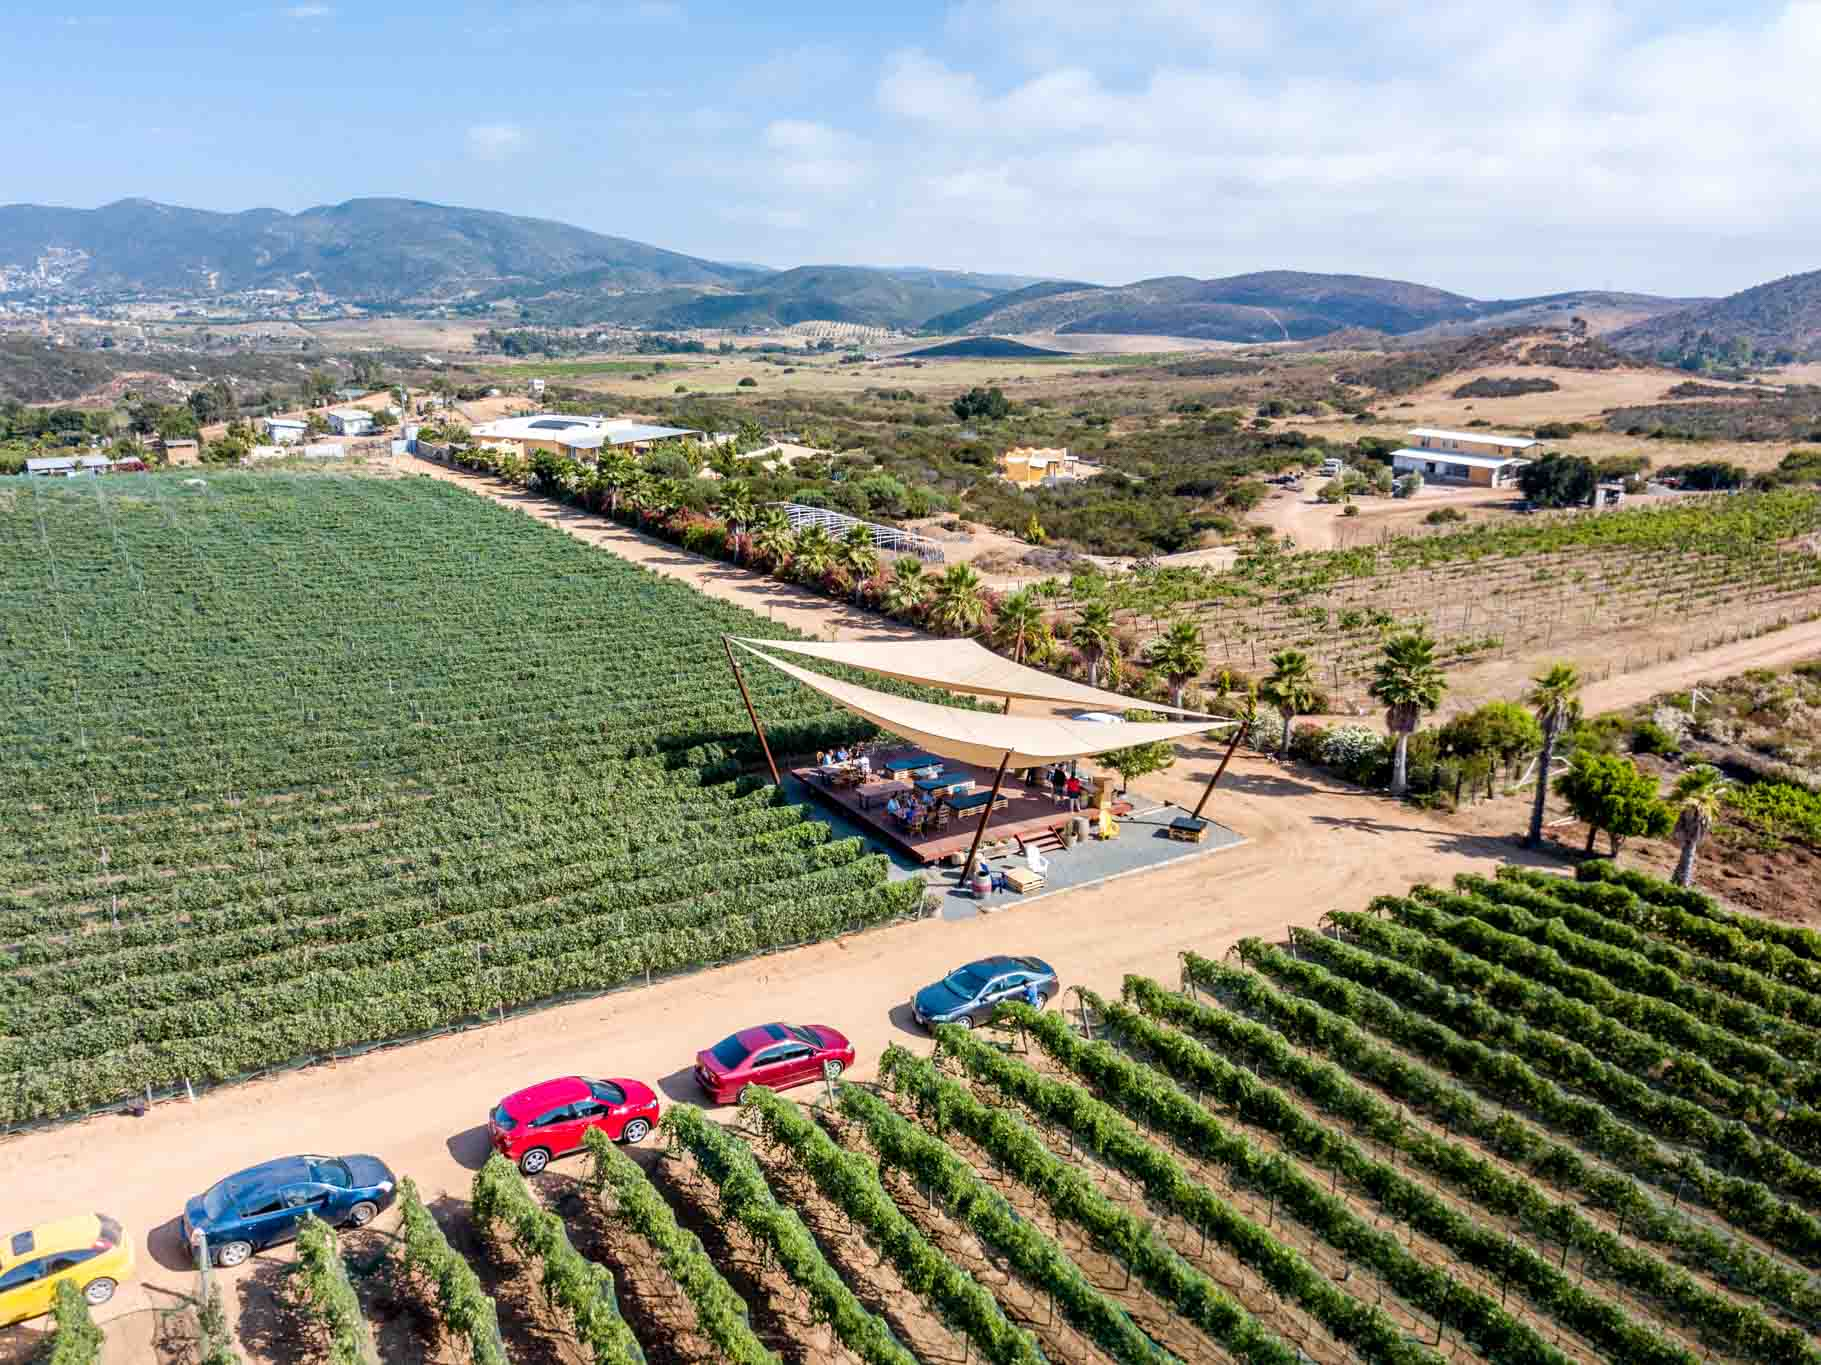 Aerial view of rows of vines in the Mexico wine country